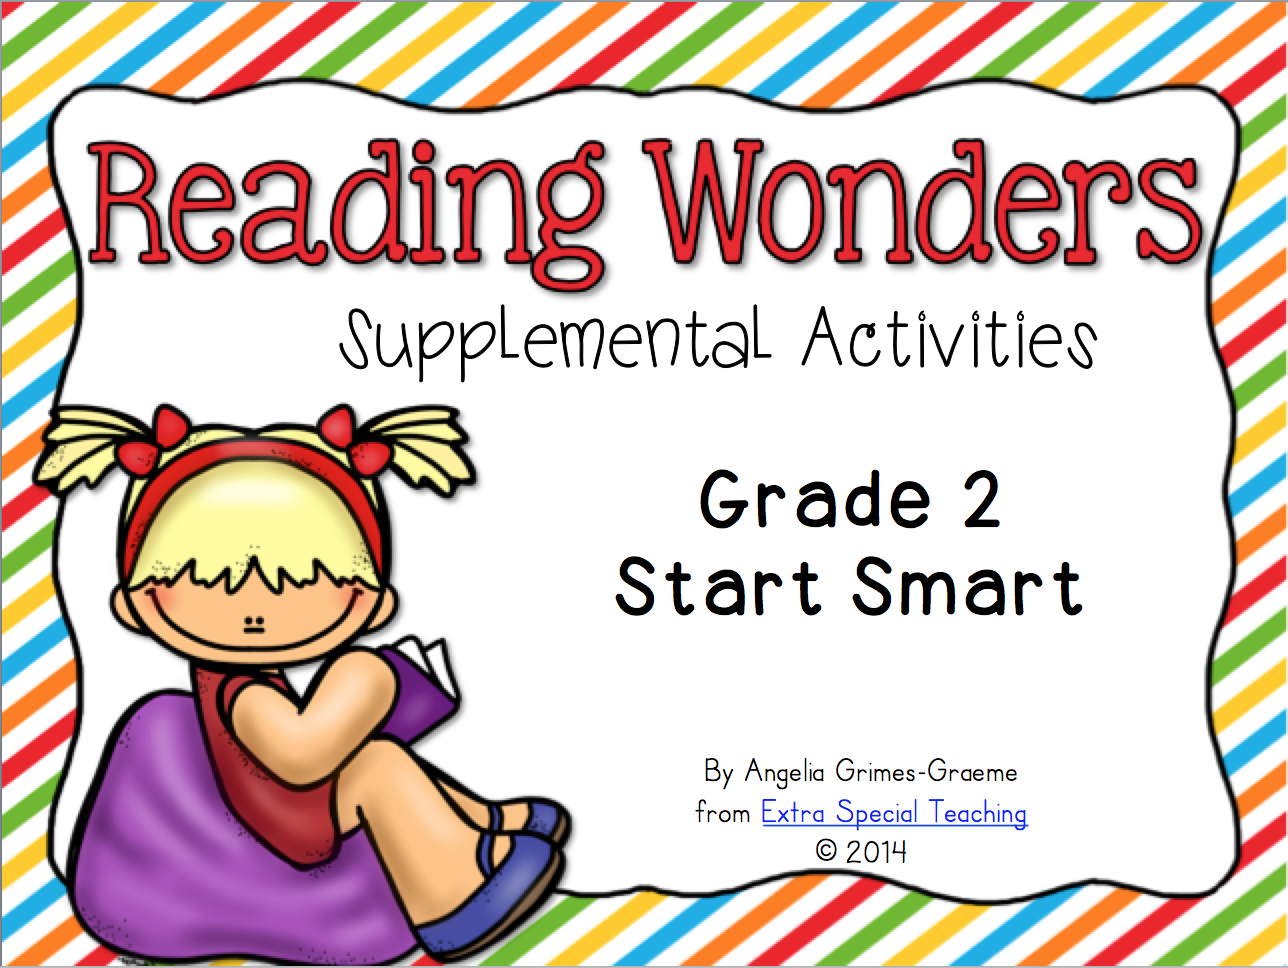 Extra Special Teaching: Reading Wonders Curriculum in my